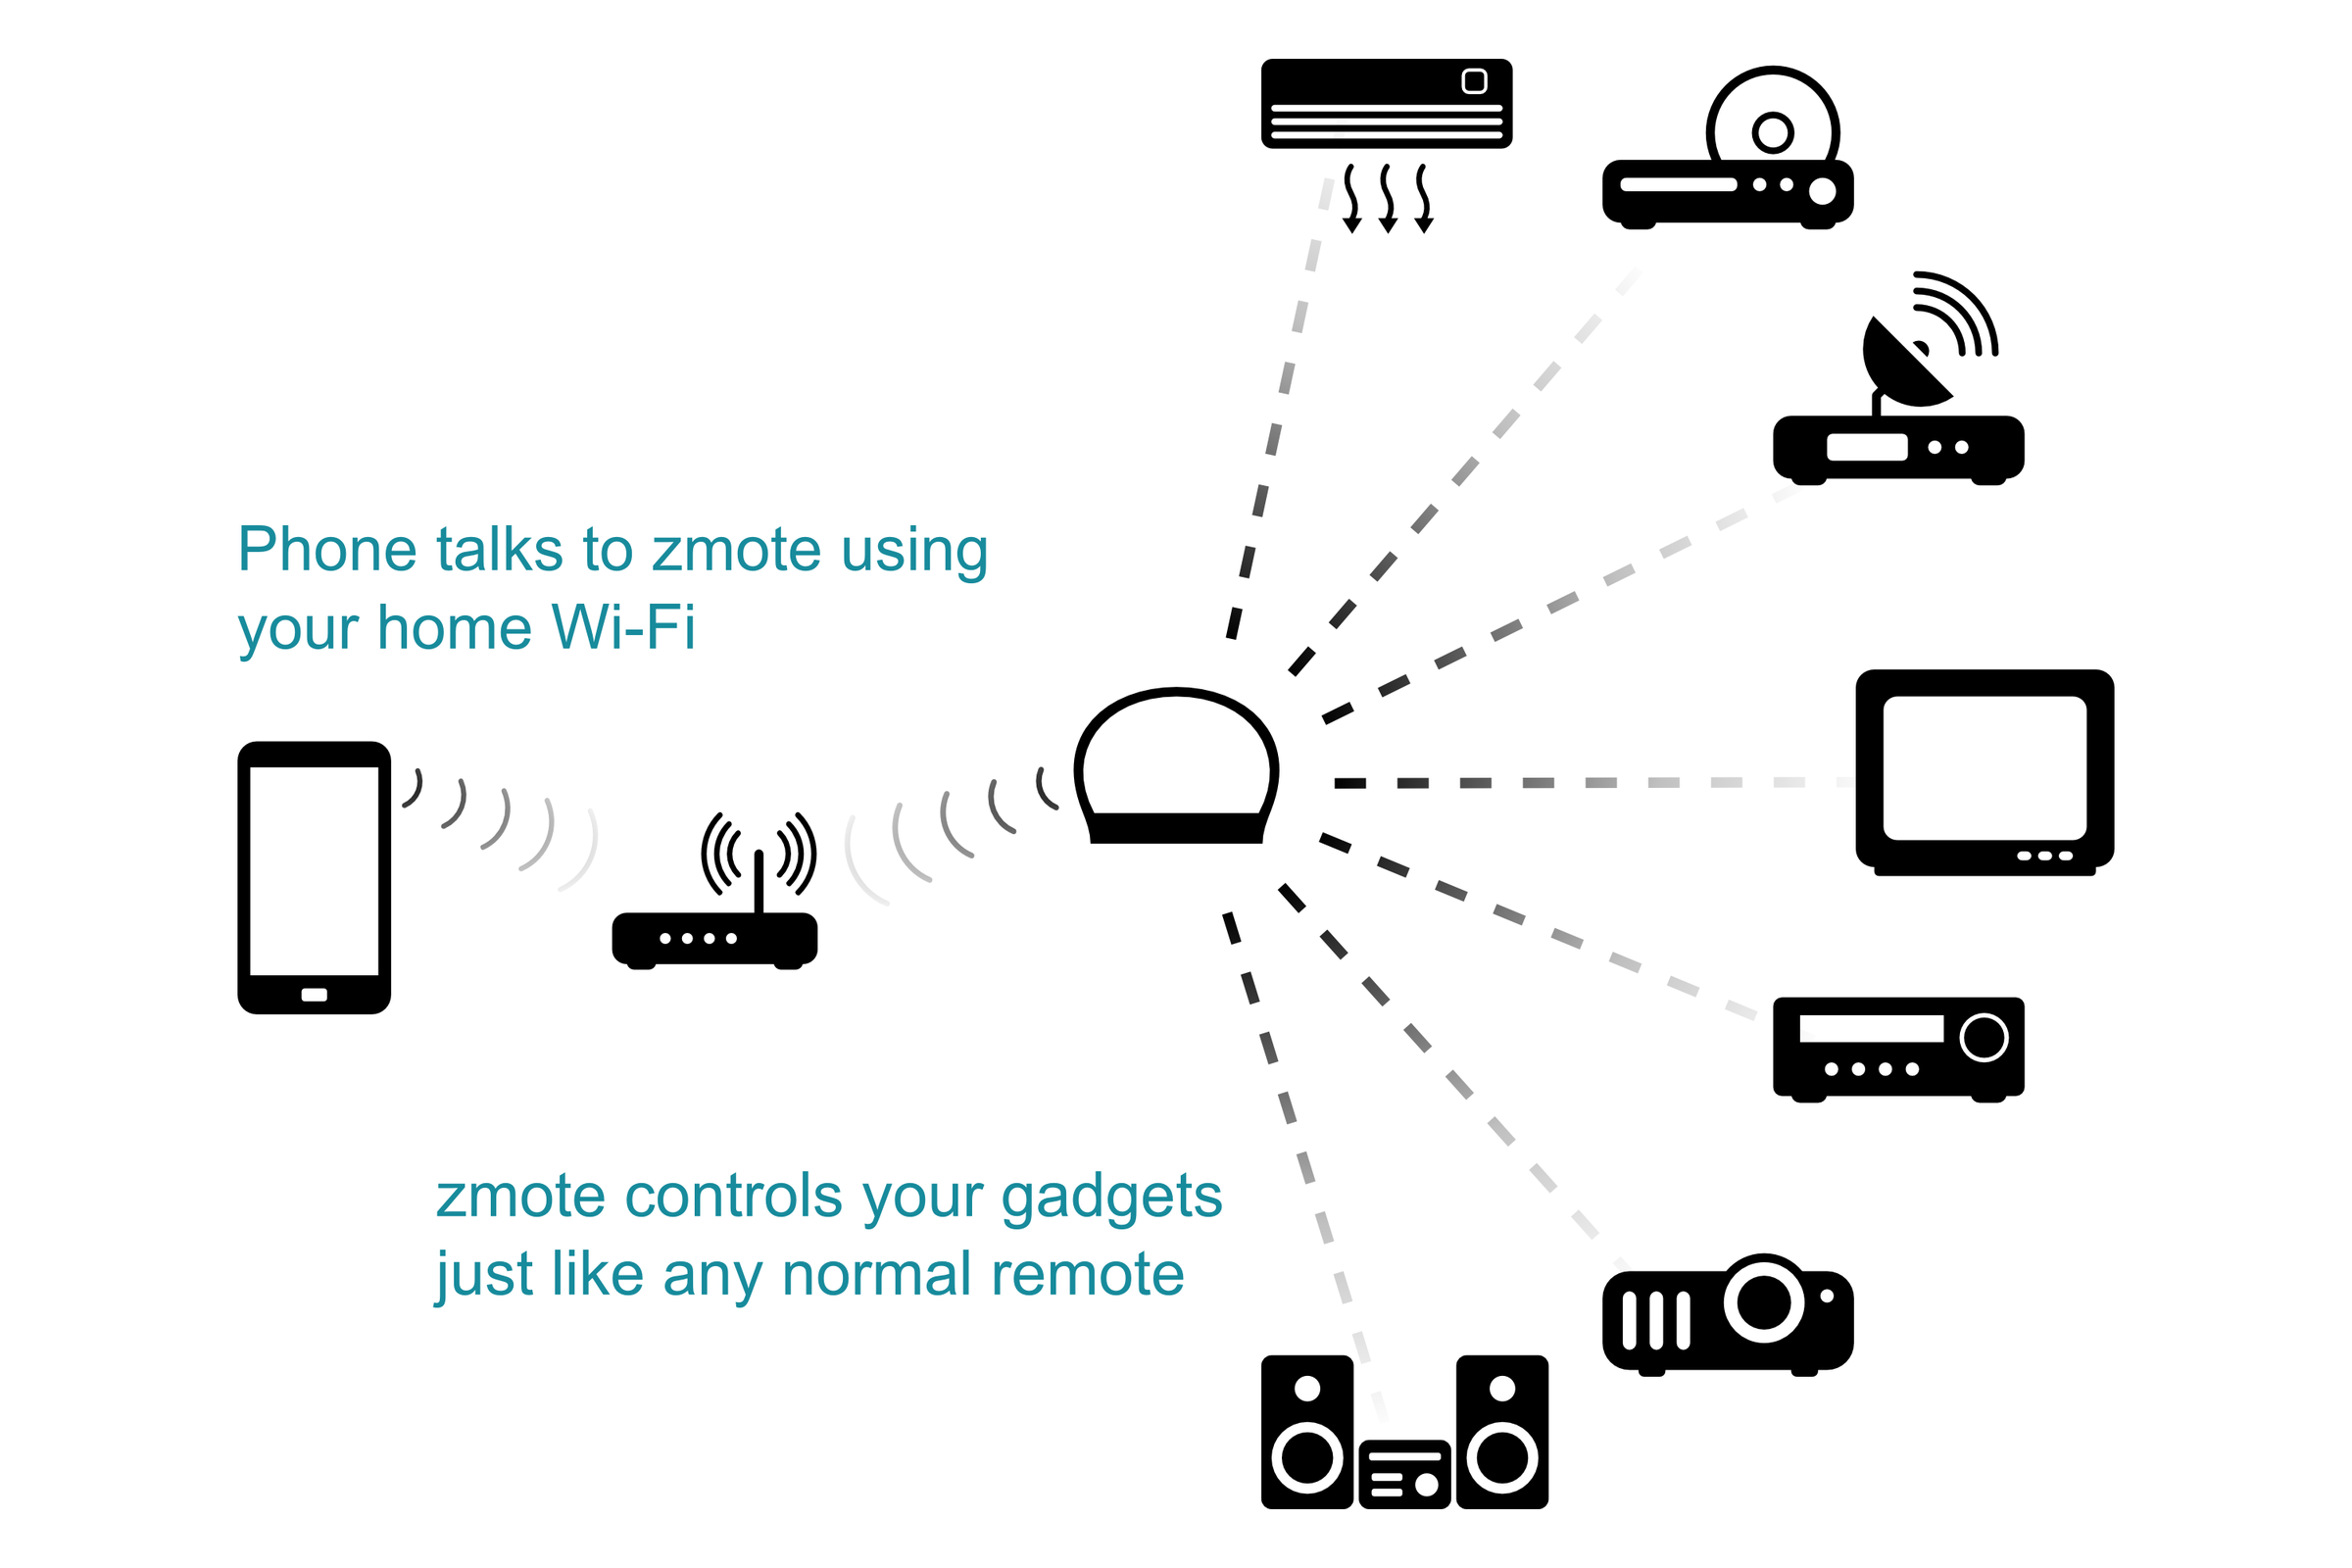 картинка ZMOTE WIFI to IR ИК-контроллер от  интернет-магазина Z-Neco